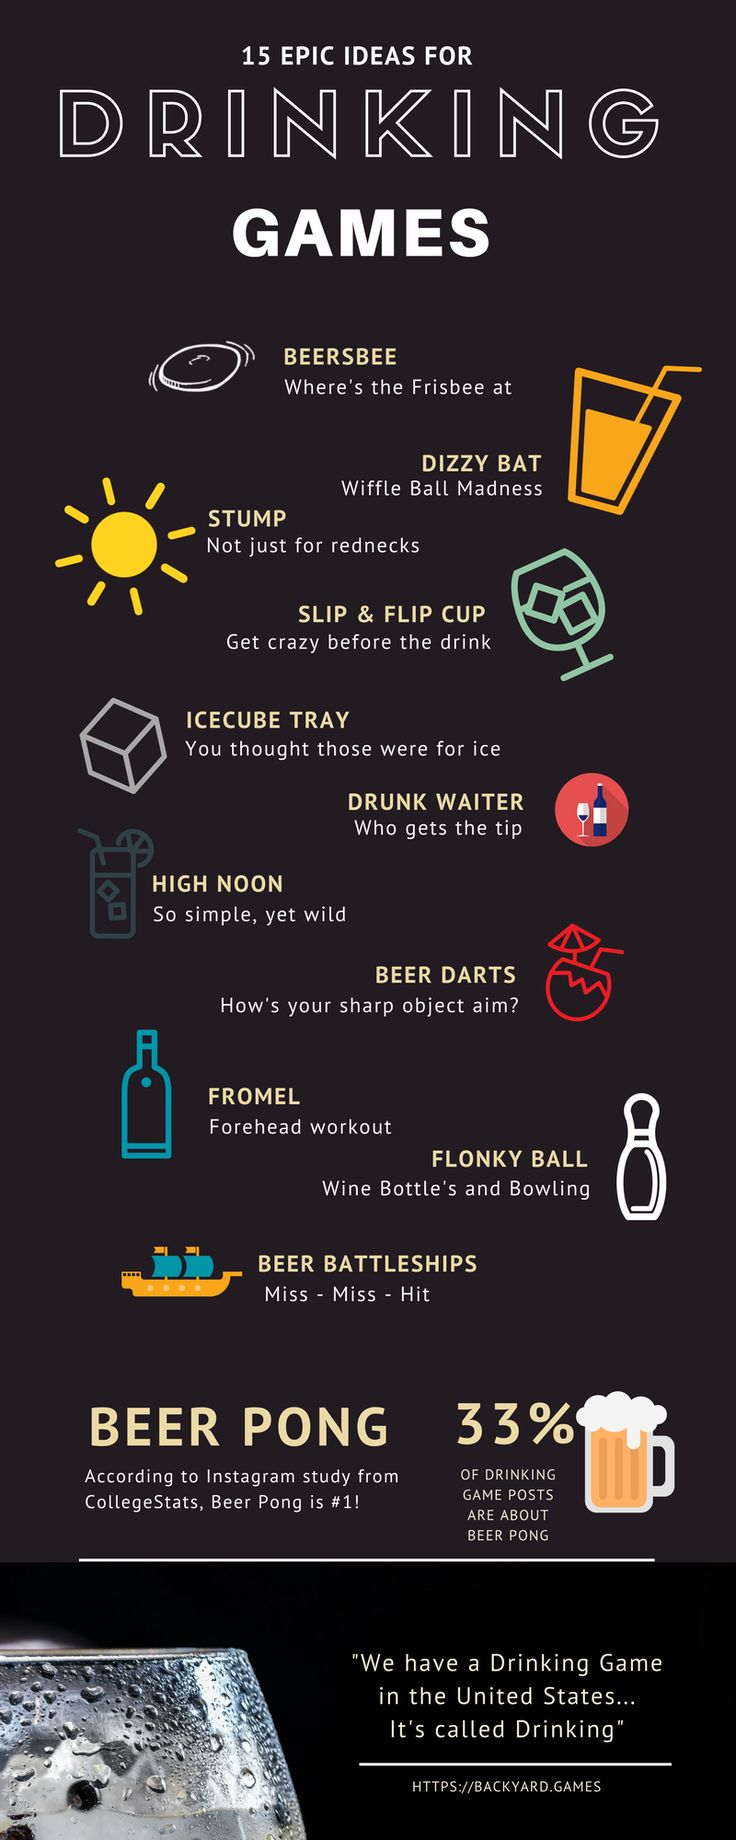 Infographic: Love Drinking Games? We have you covered with 15 epic drinking games you probably haven't heard of plus the classic's of Beer Pong of Course!  Beersbee | Dizzy Bat | Stump | Slip & Flip Cup | Flip Cup | Drunk Waiter | High Noon | Beer Darts | Fromel | Flonky Ball | Beer Battleships & more!